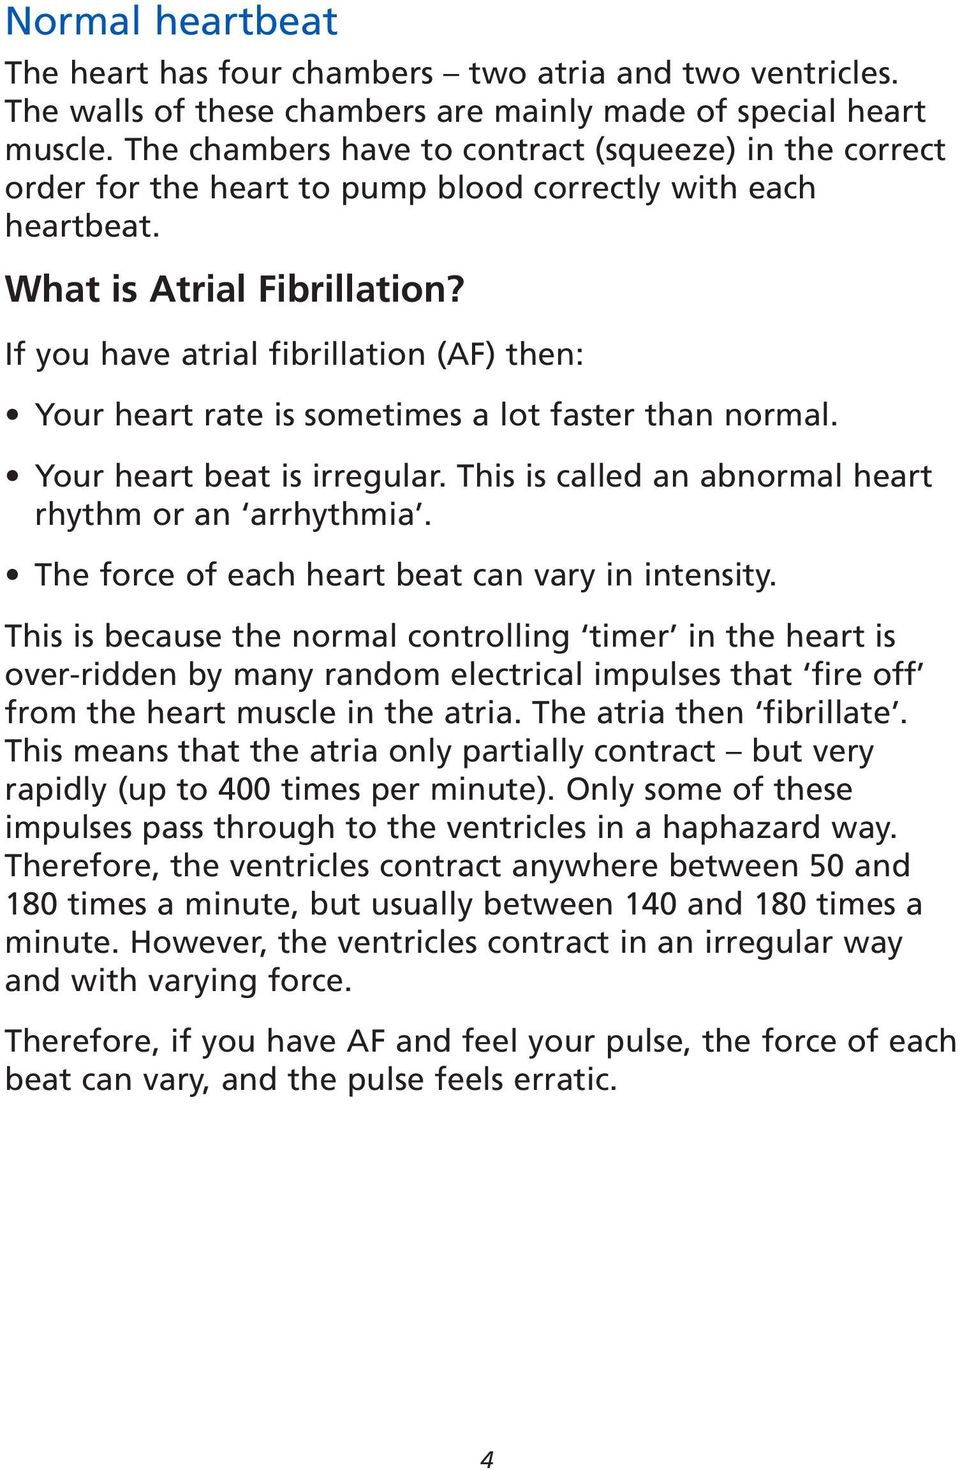 If you have atrial fibrillation (AF) then: Your heart rate is sometimes a lot faster than normal. Your heart beat is irregular. This is called an abnormal heart rhythm or an arrhythmia.